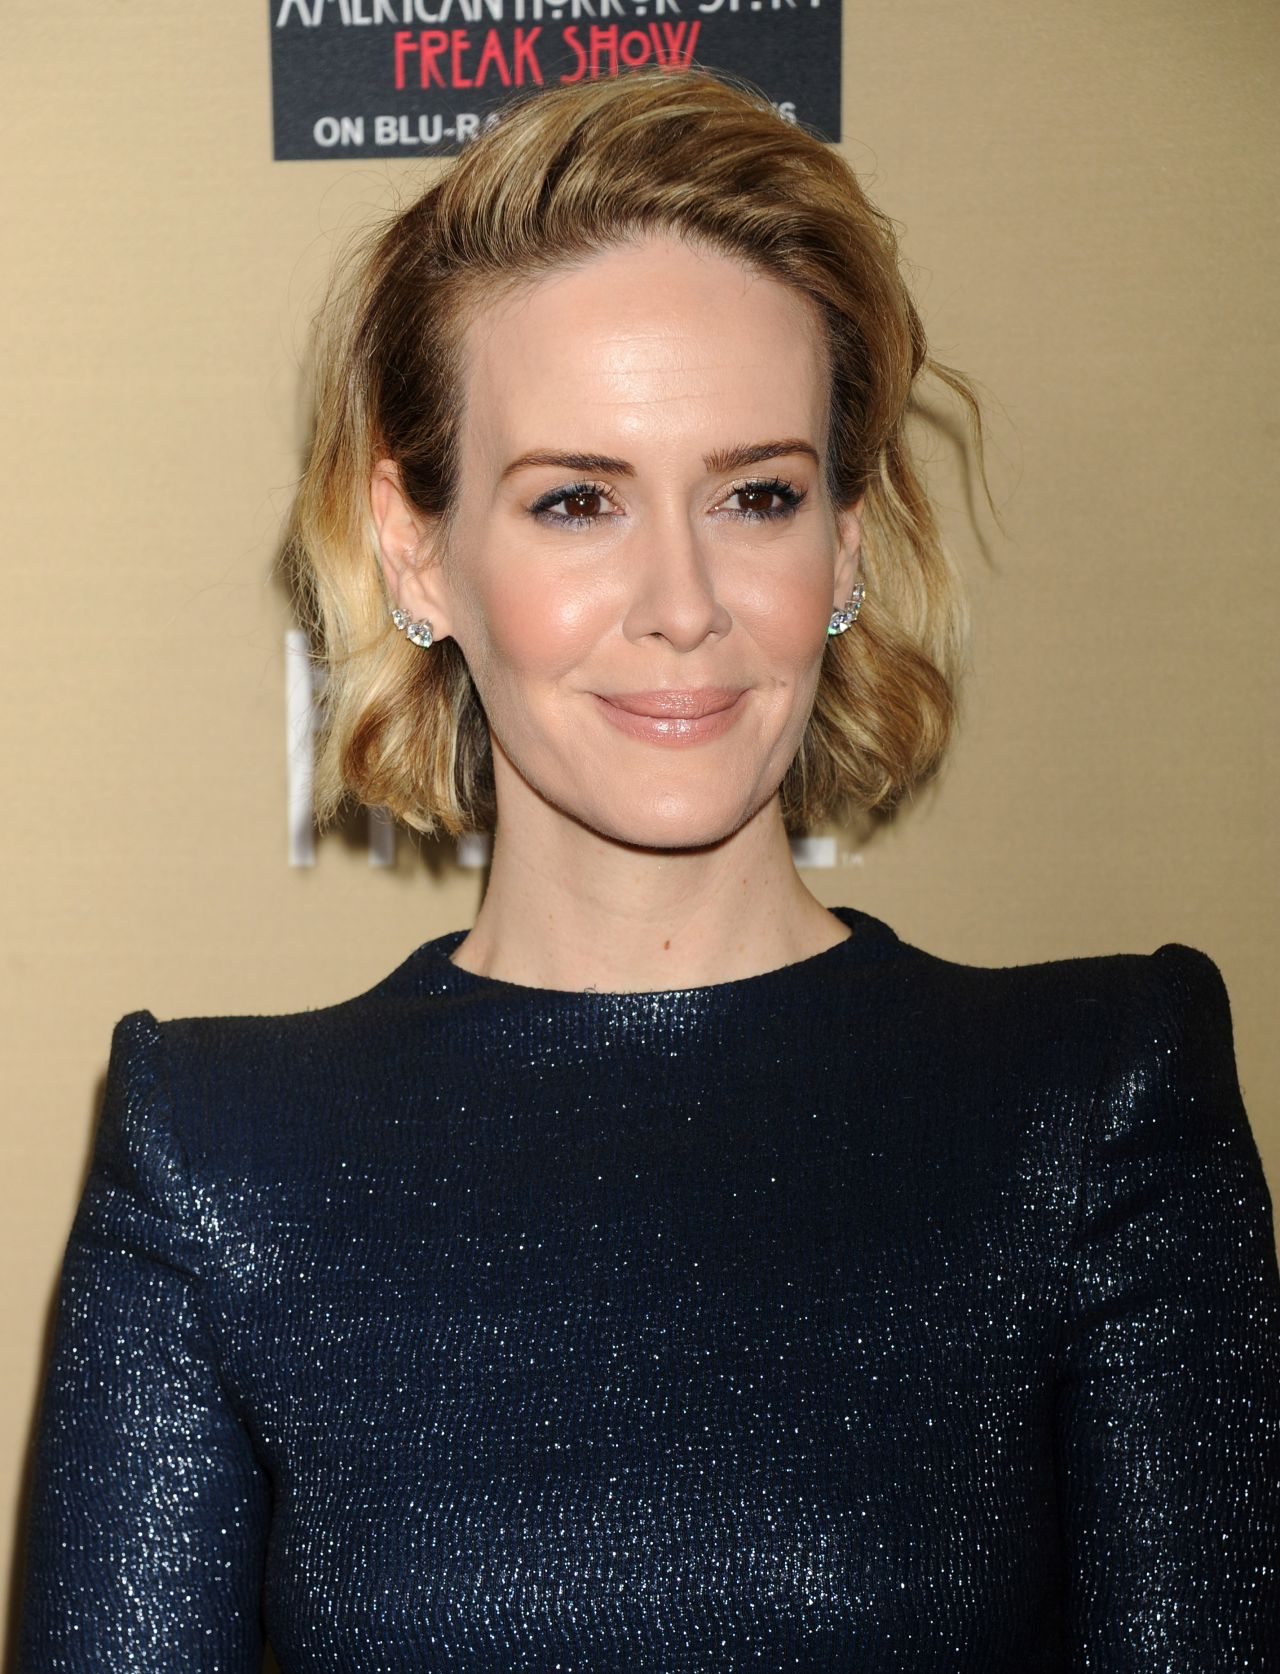 image Sarah paulson american horror story coven